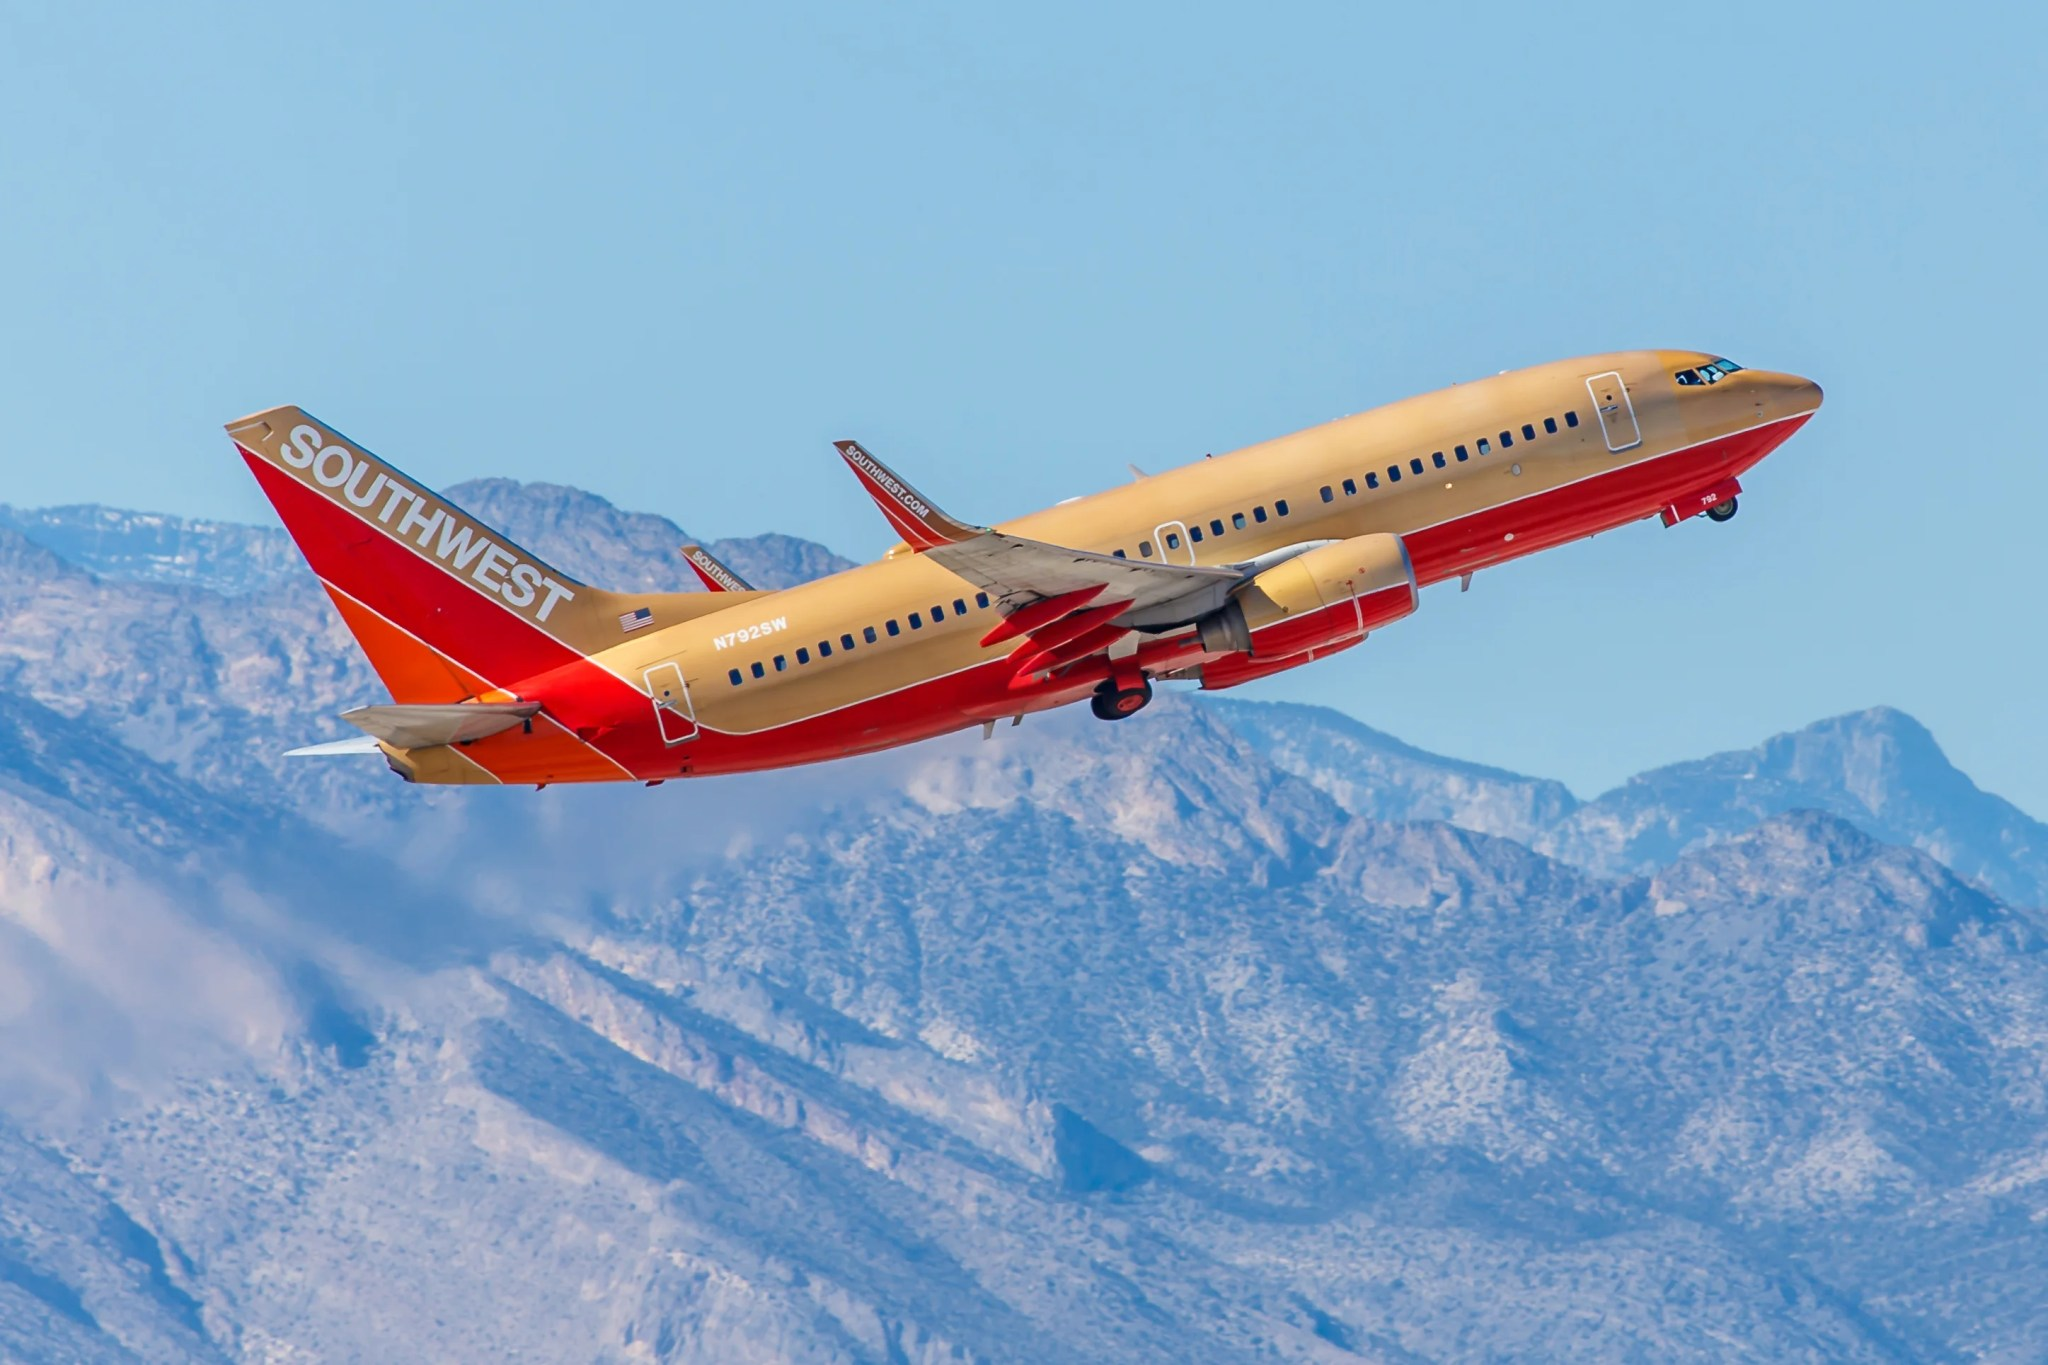 See the Best Retro-Colored Planes in the Skies Today